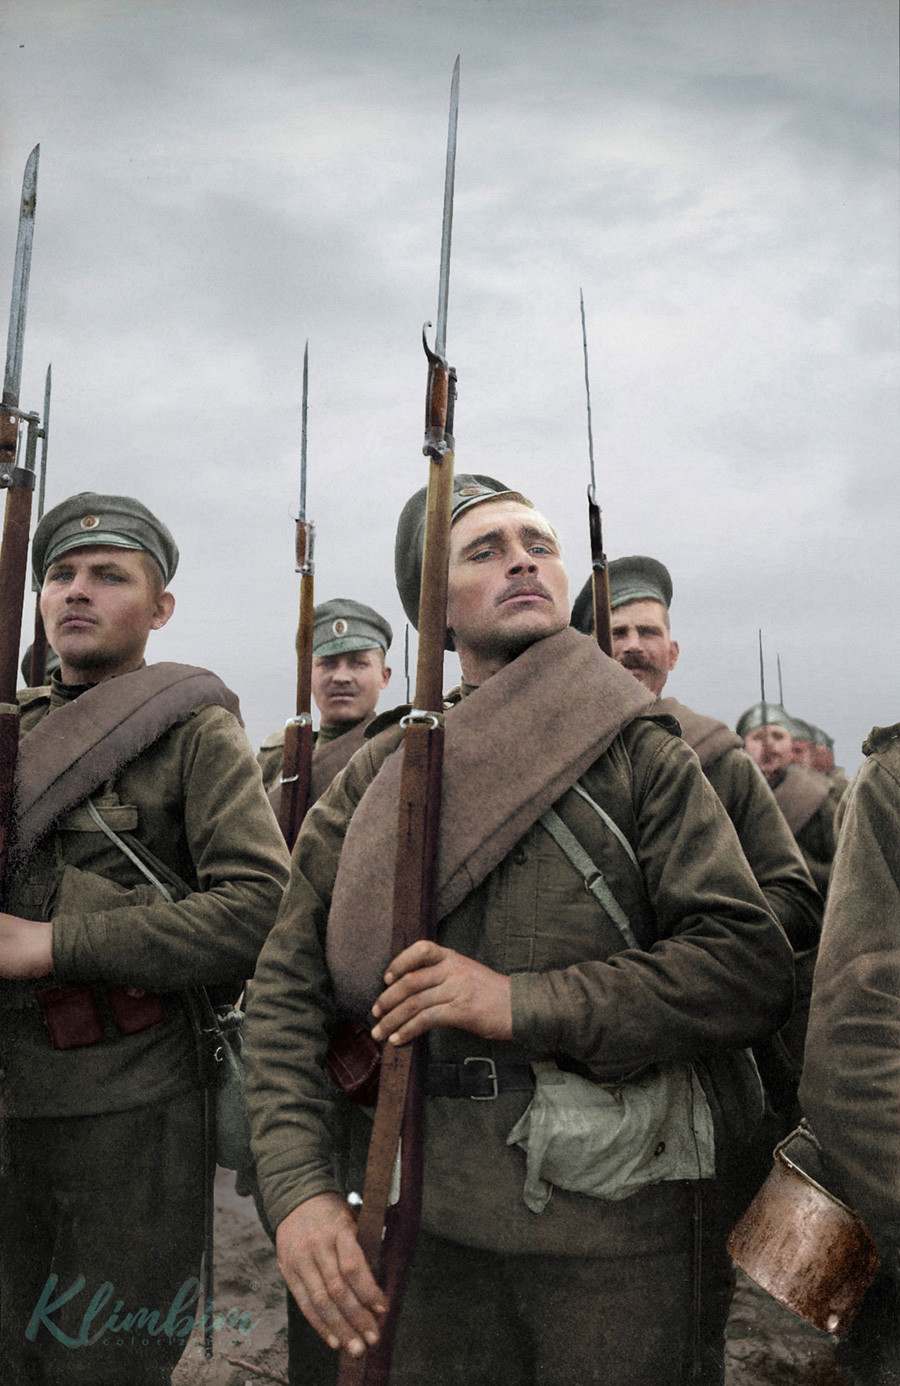 Russian recruits, early 20th century